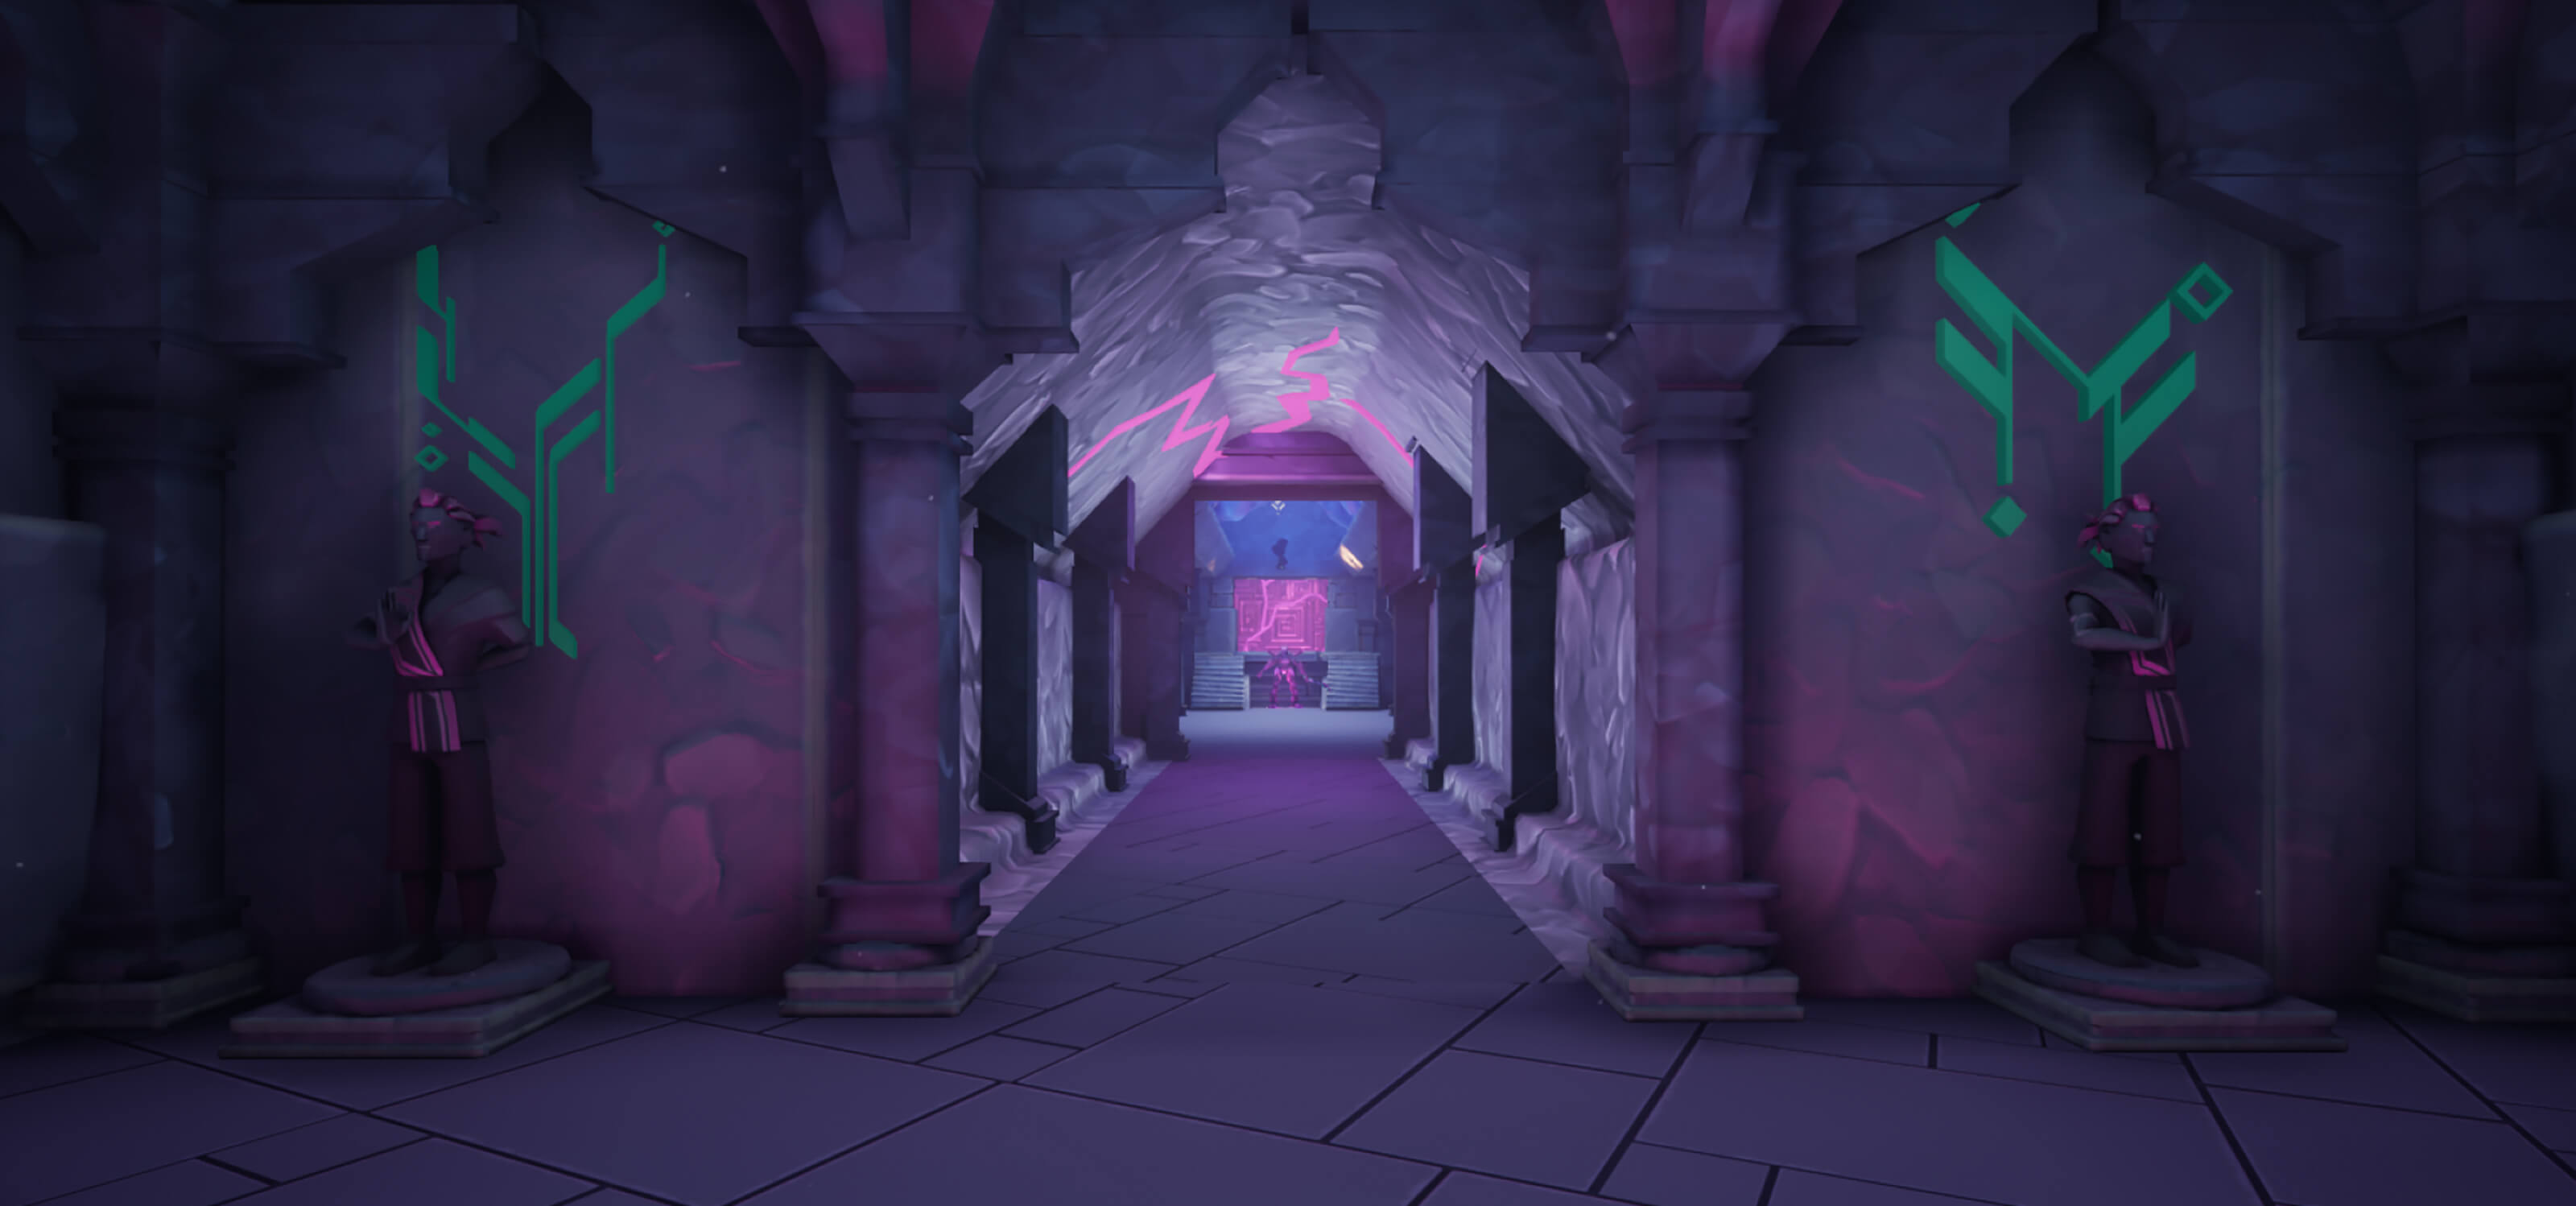 Game screenshot showing stone ruins and an empty hallway